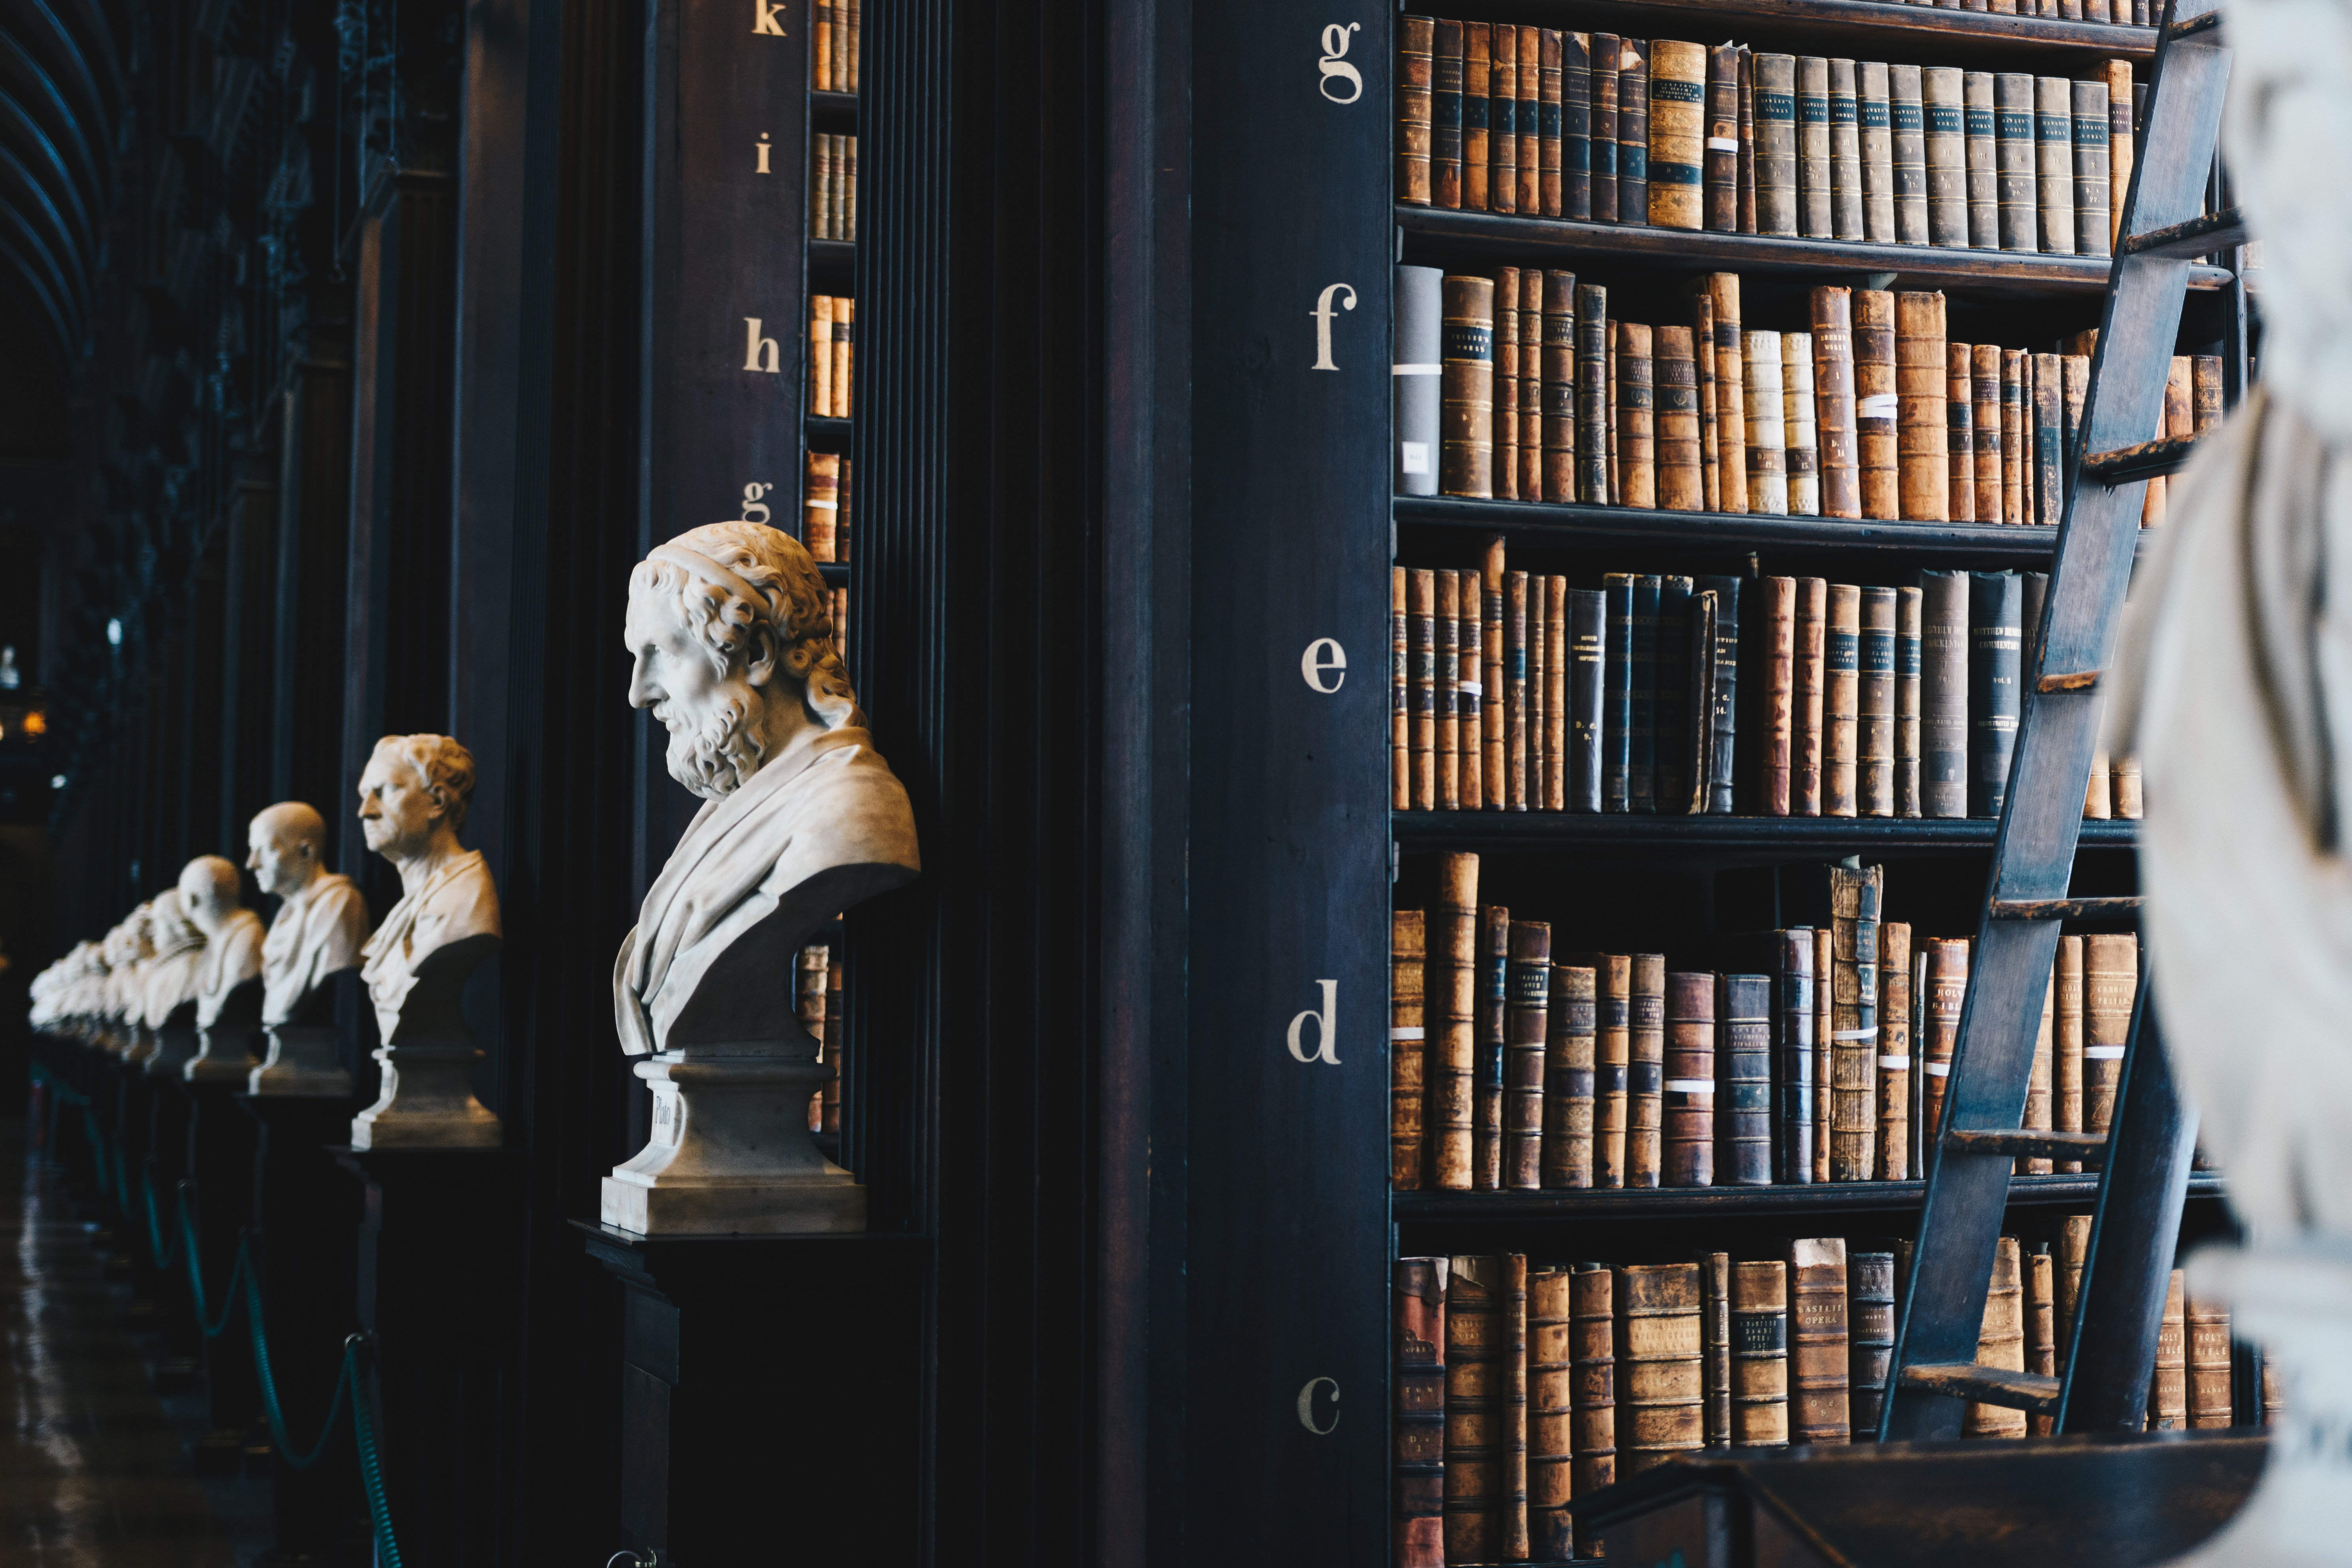 Image of Trinity College Library in Dublin